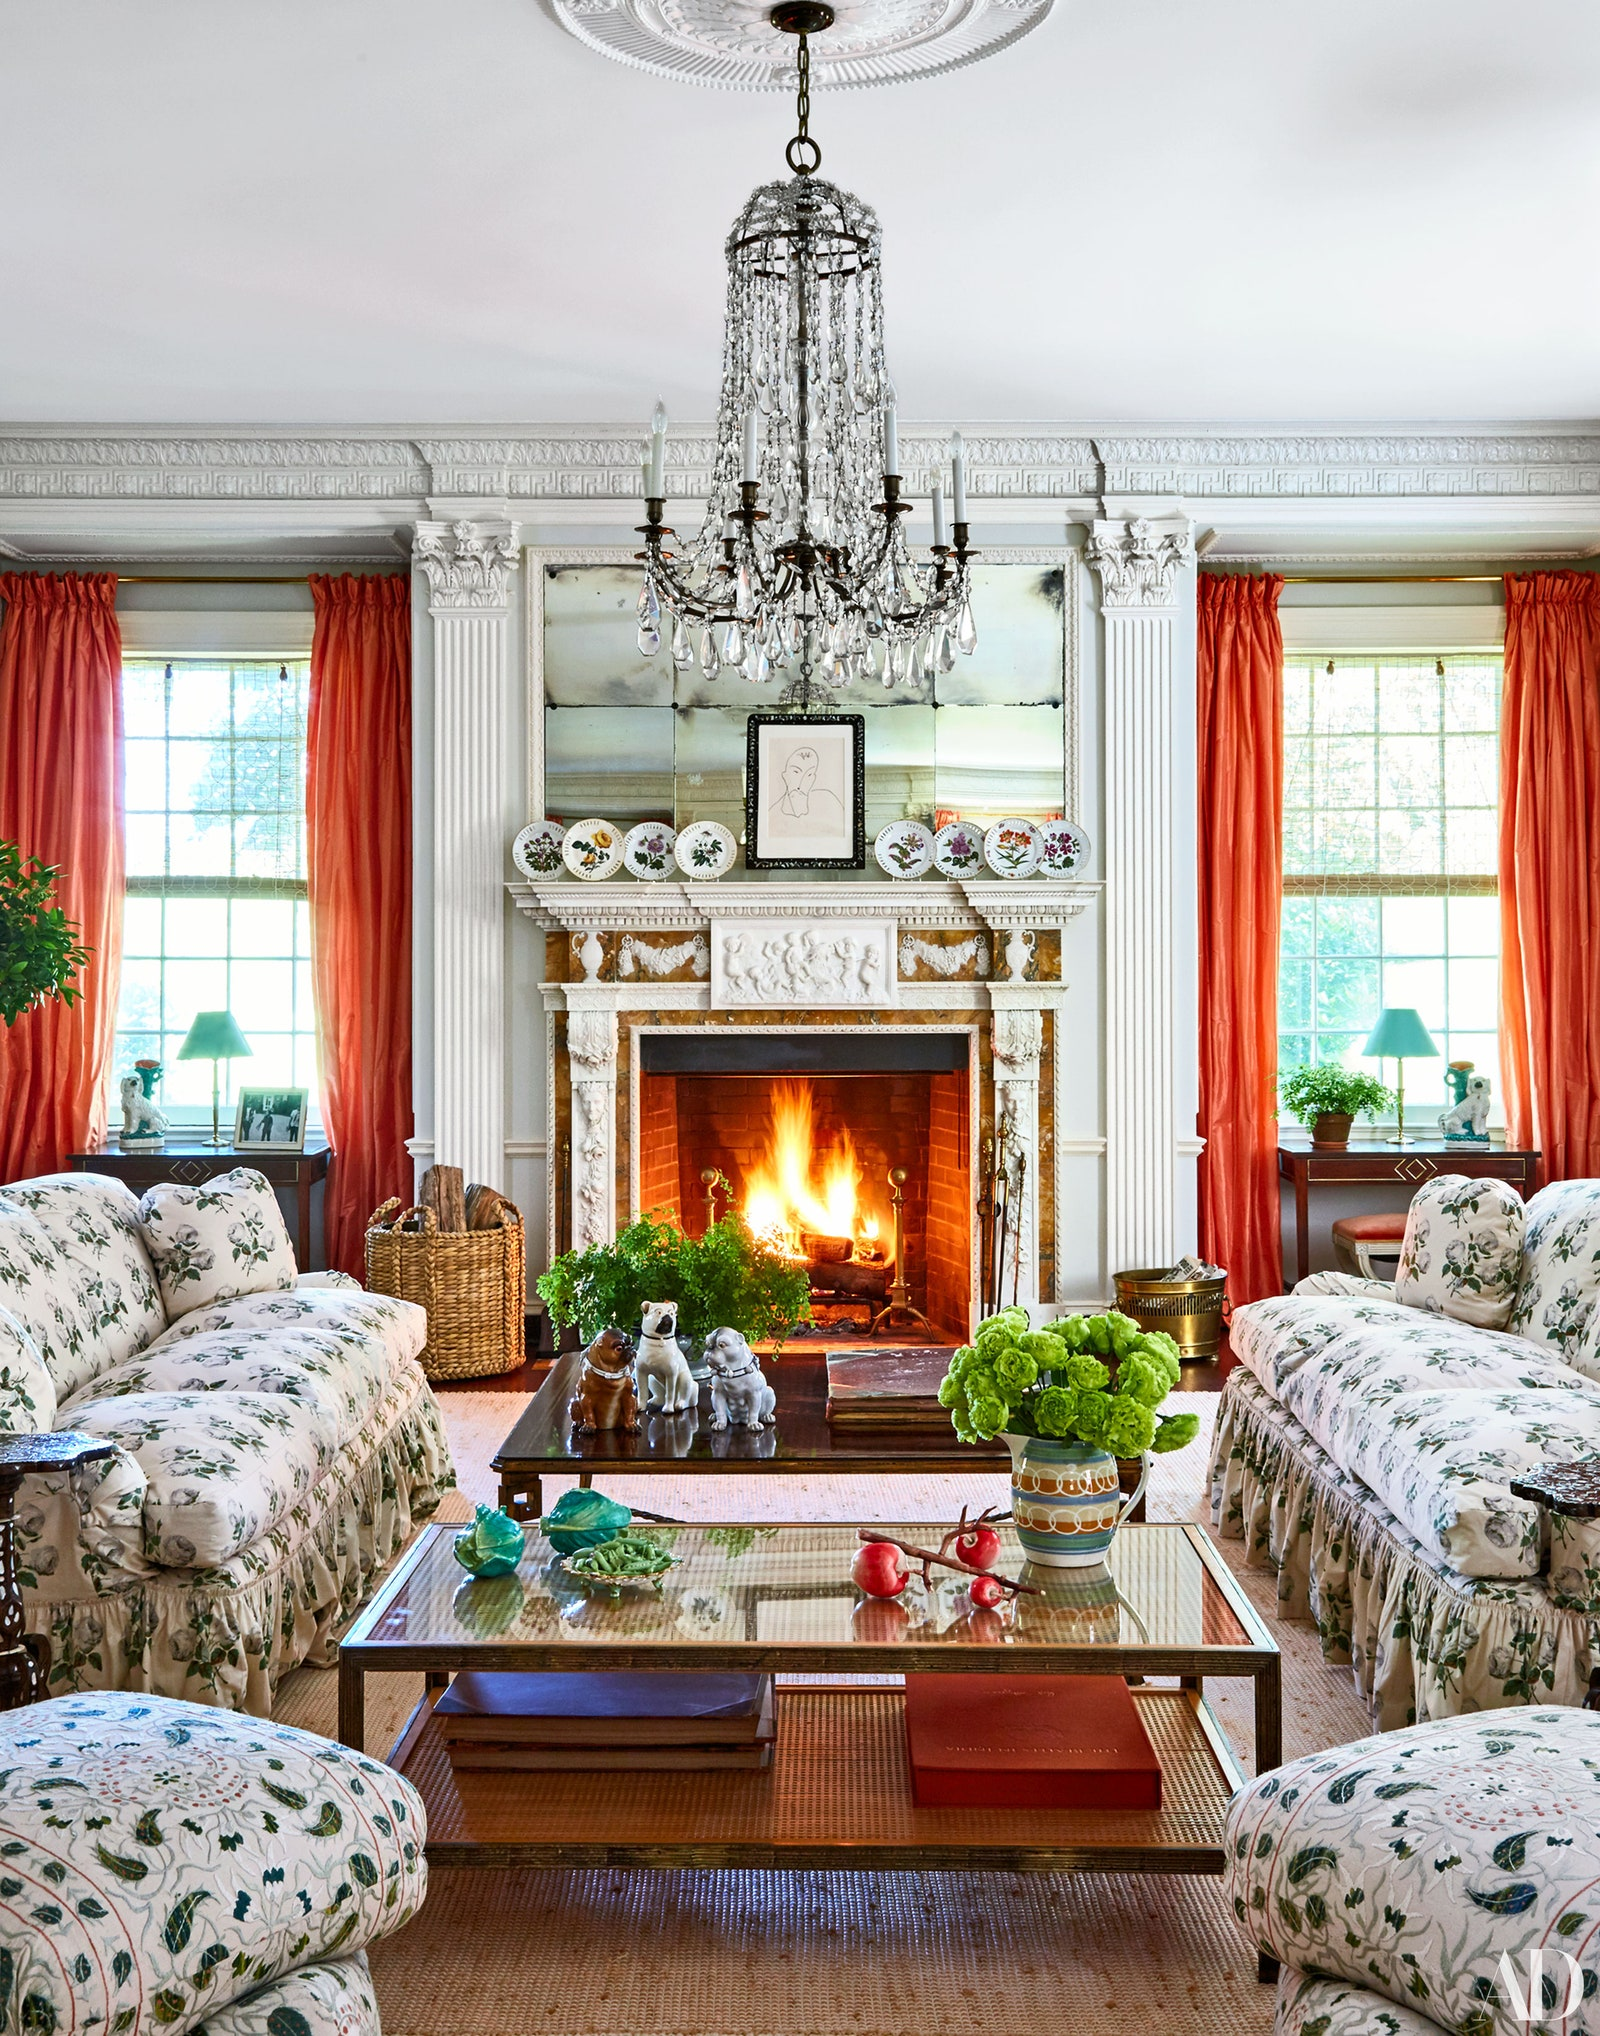 Décor Inspiration | At Home With: Tory Burch, Southampton